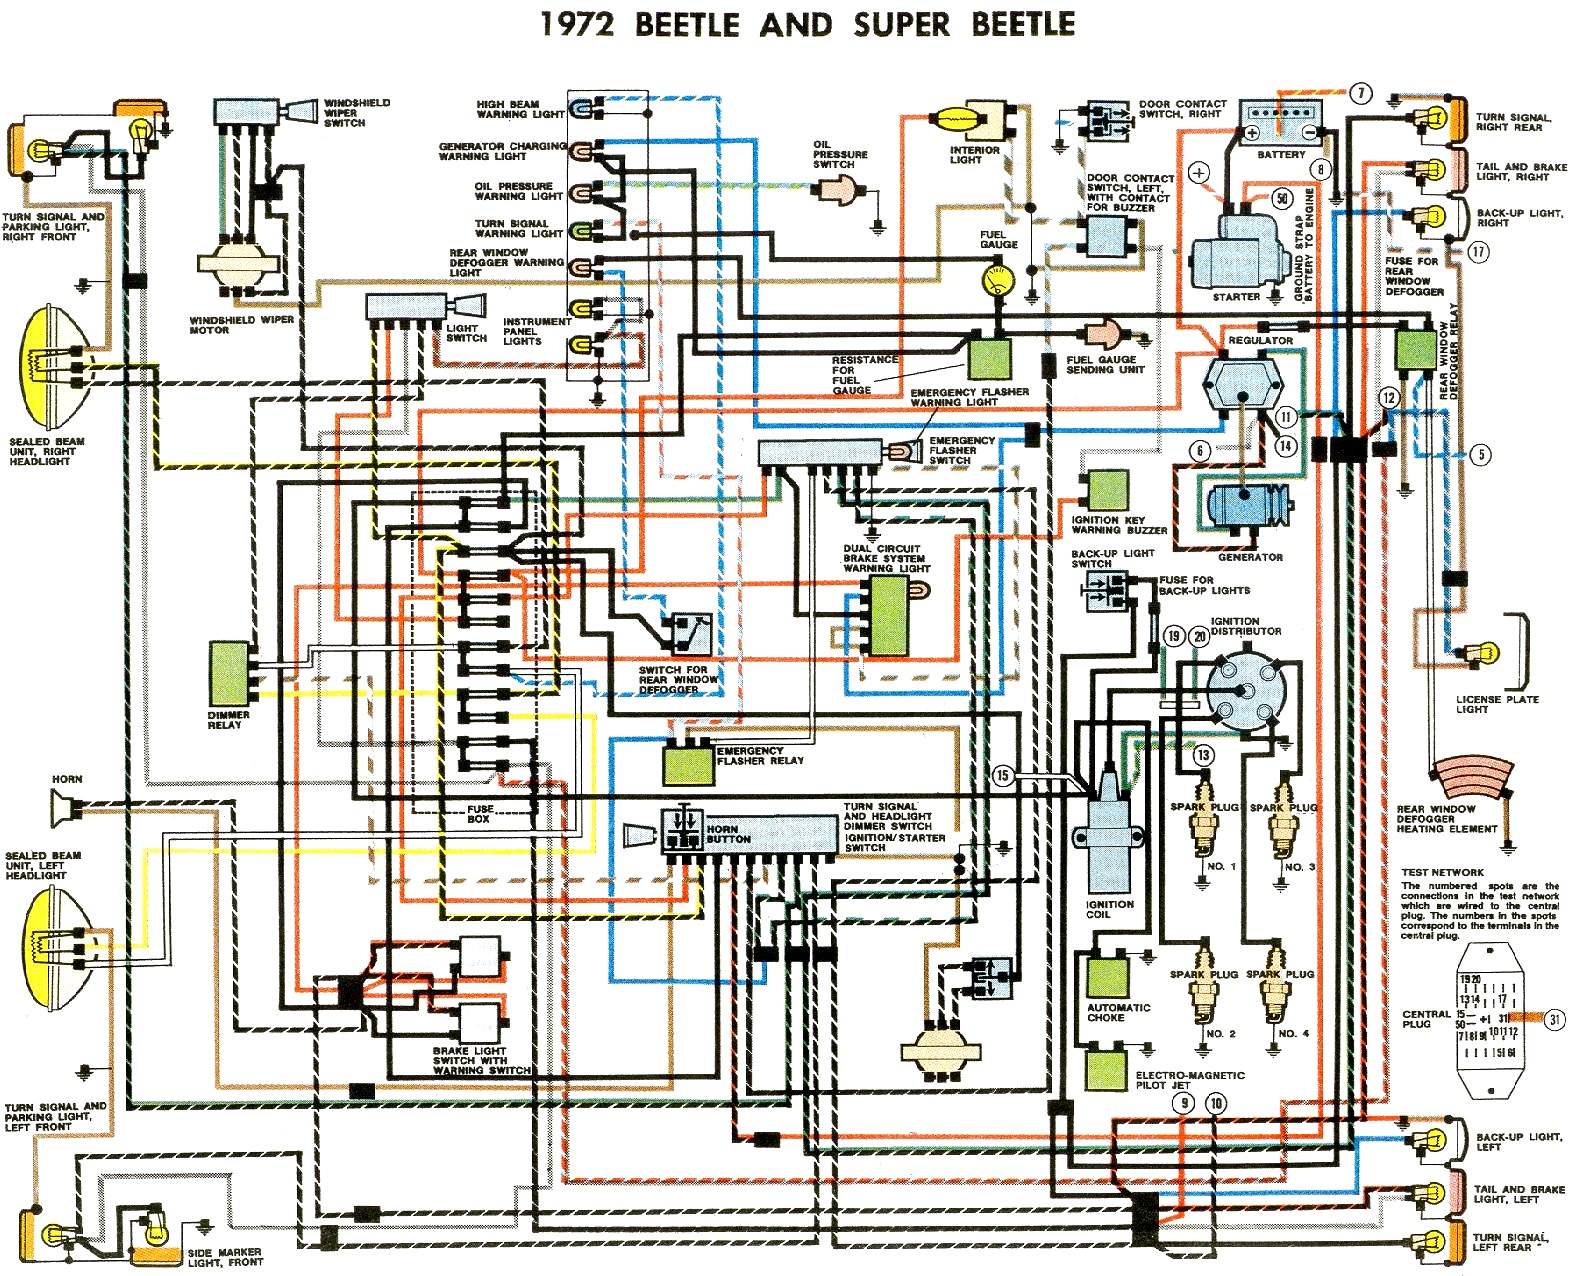 bug_72 1972 beetle wiring diagram thegoldenbug com 1973 vw wiring diagram at fashall.co